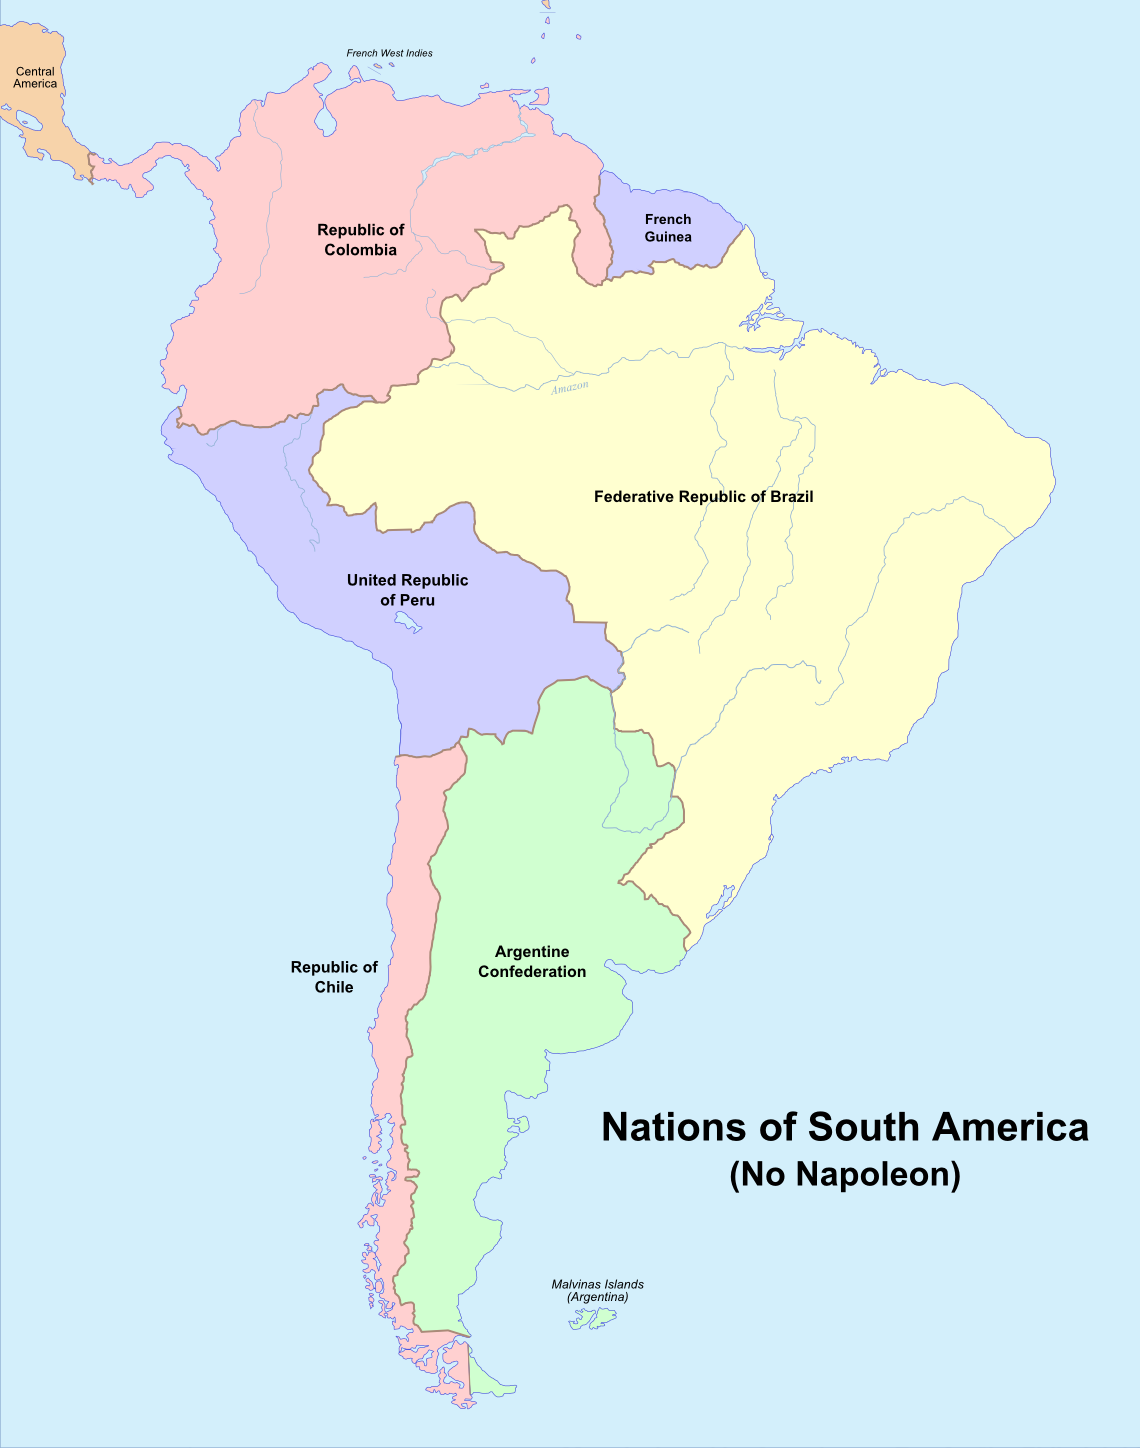 Image Map Of South America No Napoleonpng Alternative - South america map